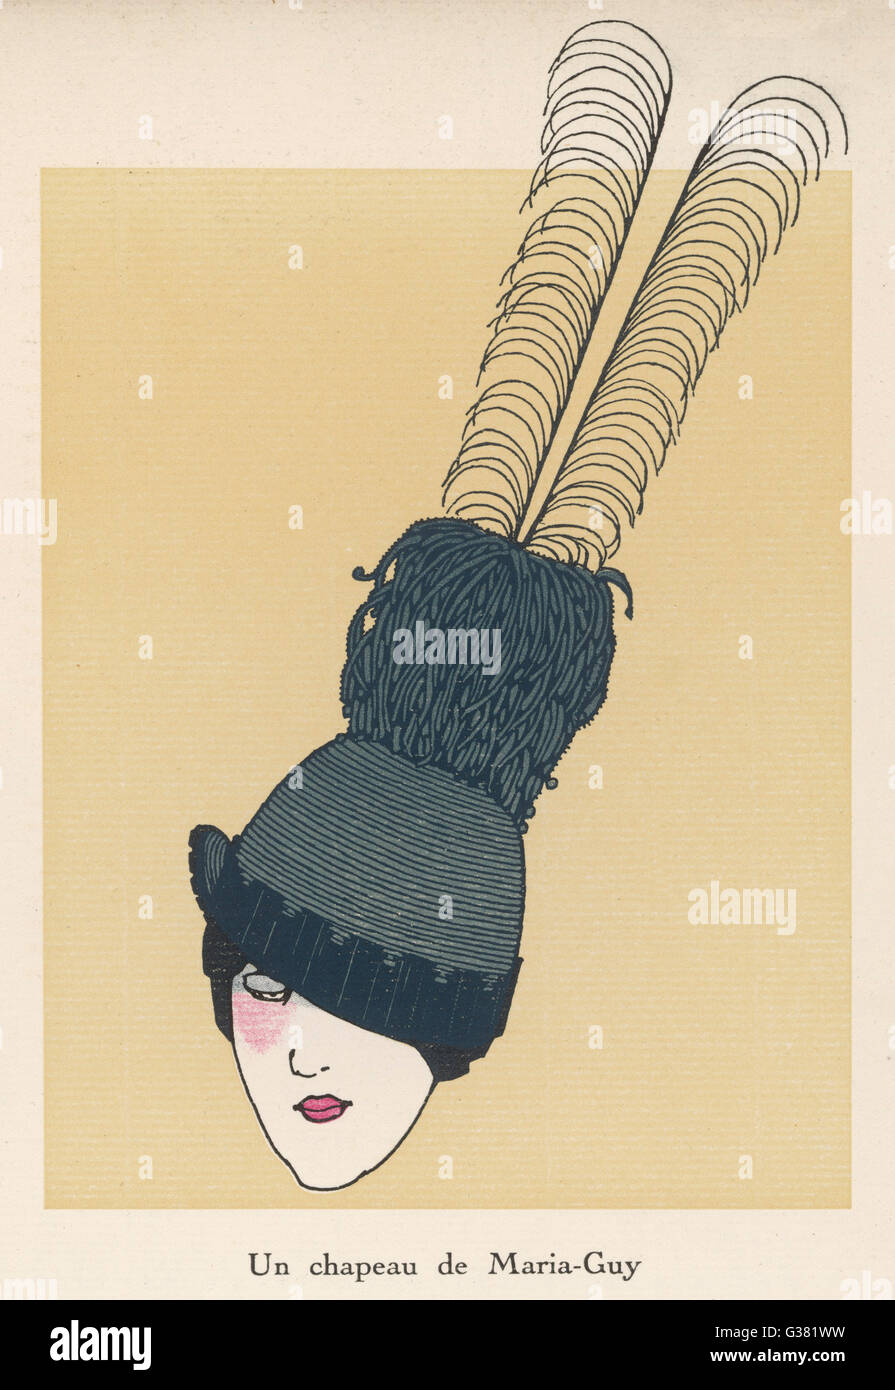 A hat by Maria-Guy with a very  long feather, worn at an angle         Date: 1913 - Stock Image